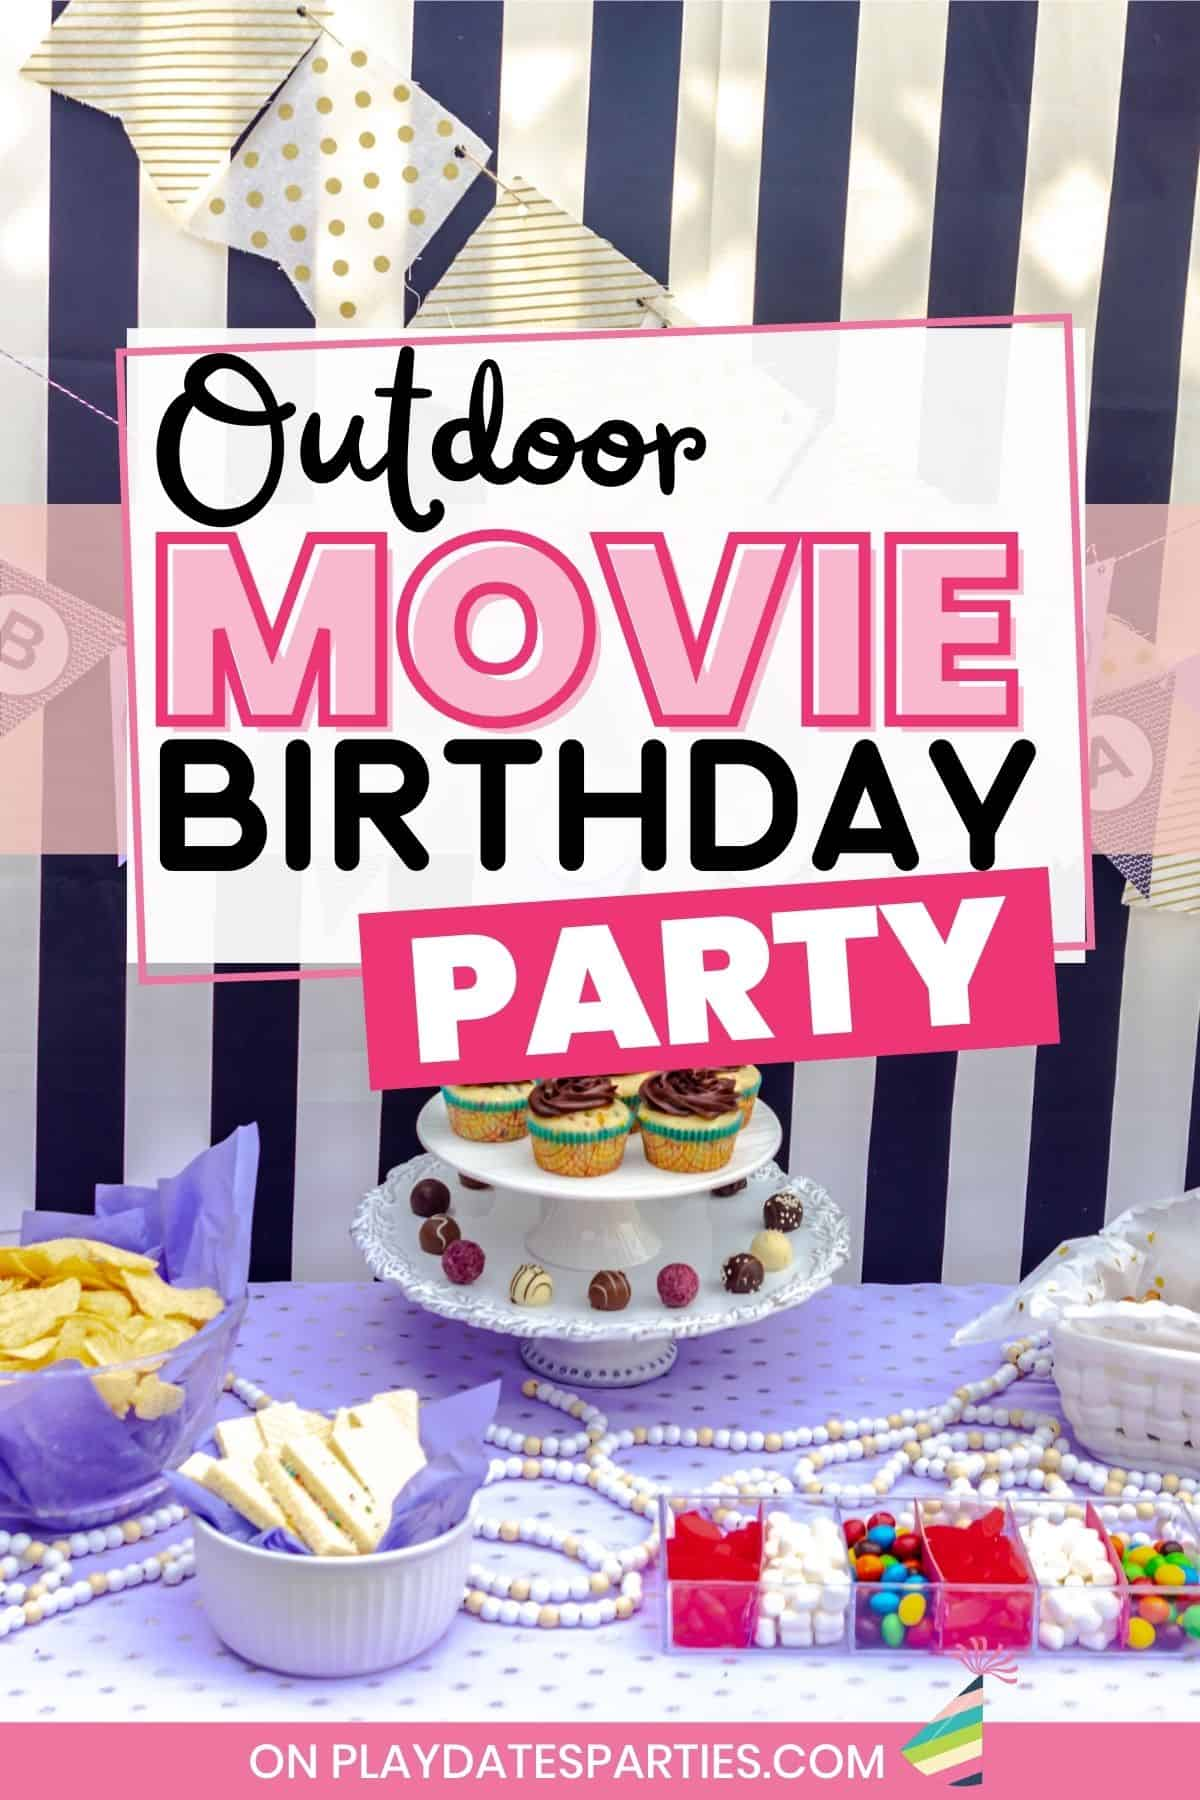 Dessert table setup with a purple and black color theme and a text overlay Outdoor Movie Birthday Party